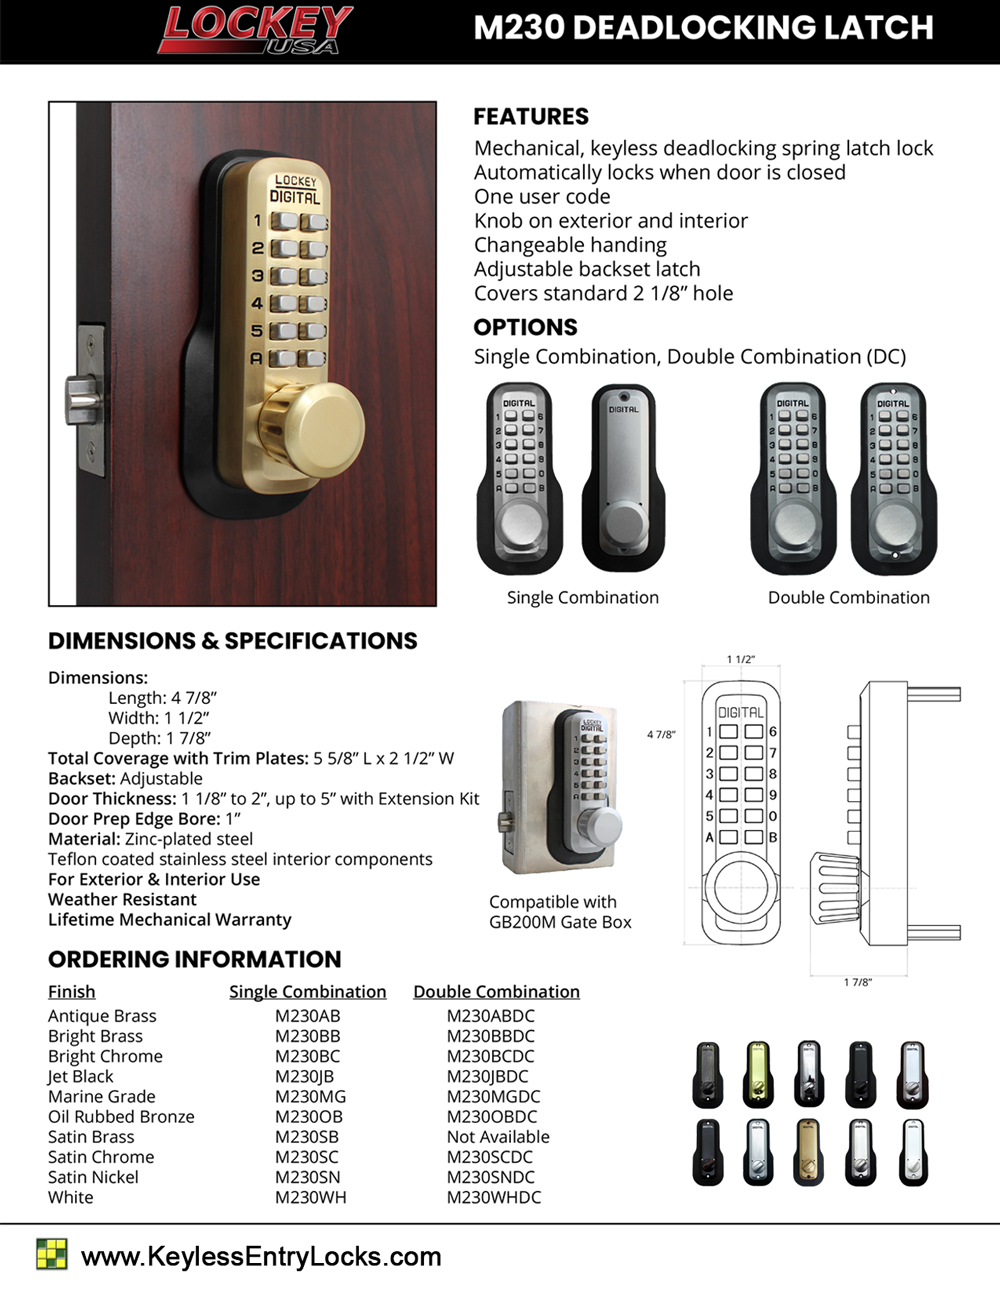 Lockey M230 Deadlocking Latchbolt Keypad Lock